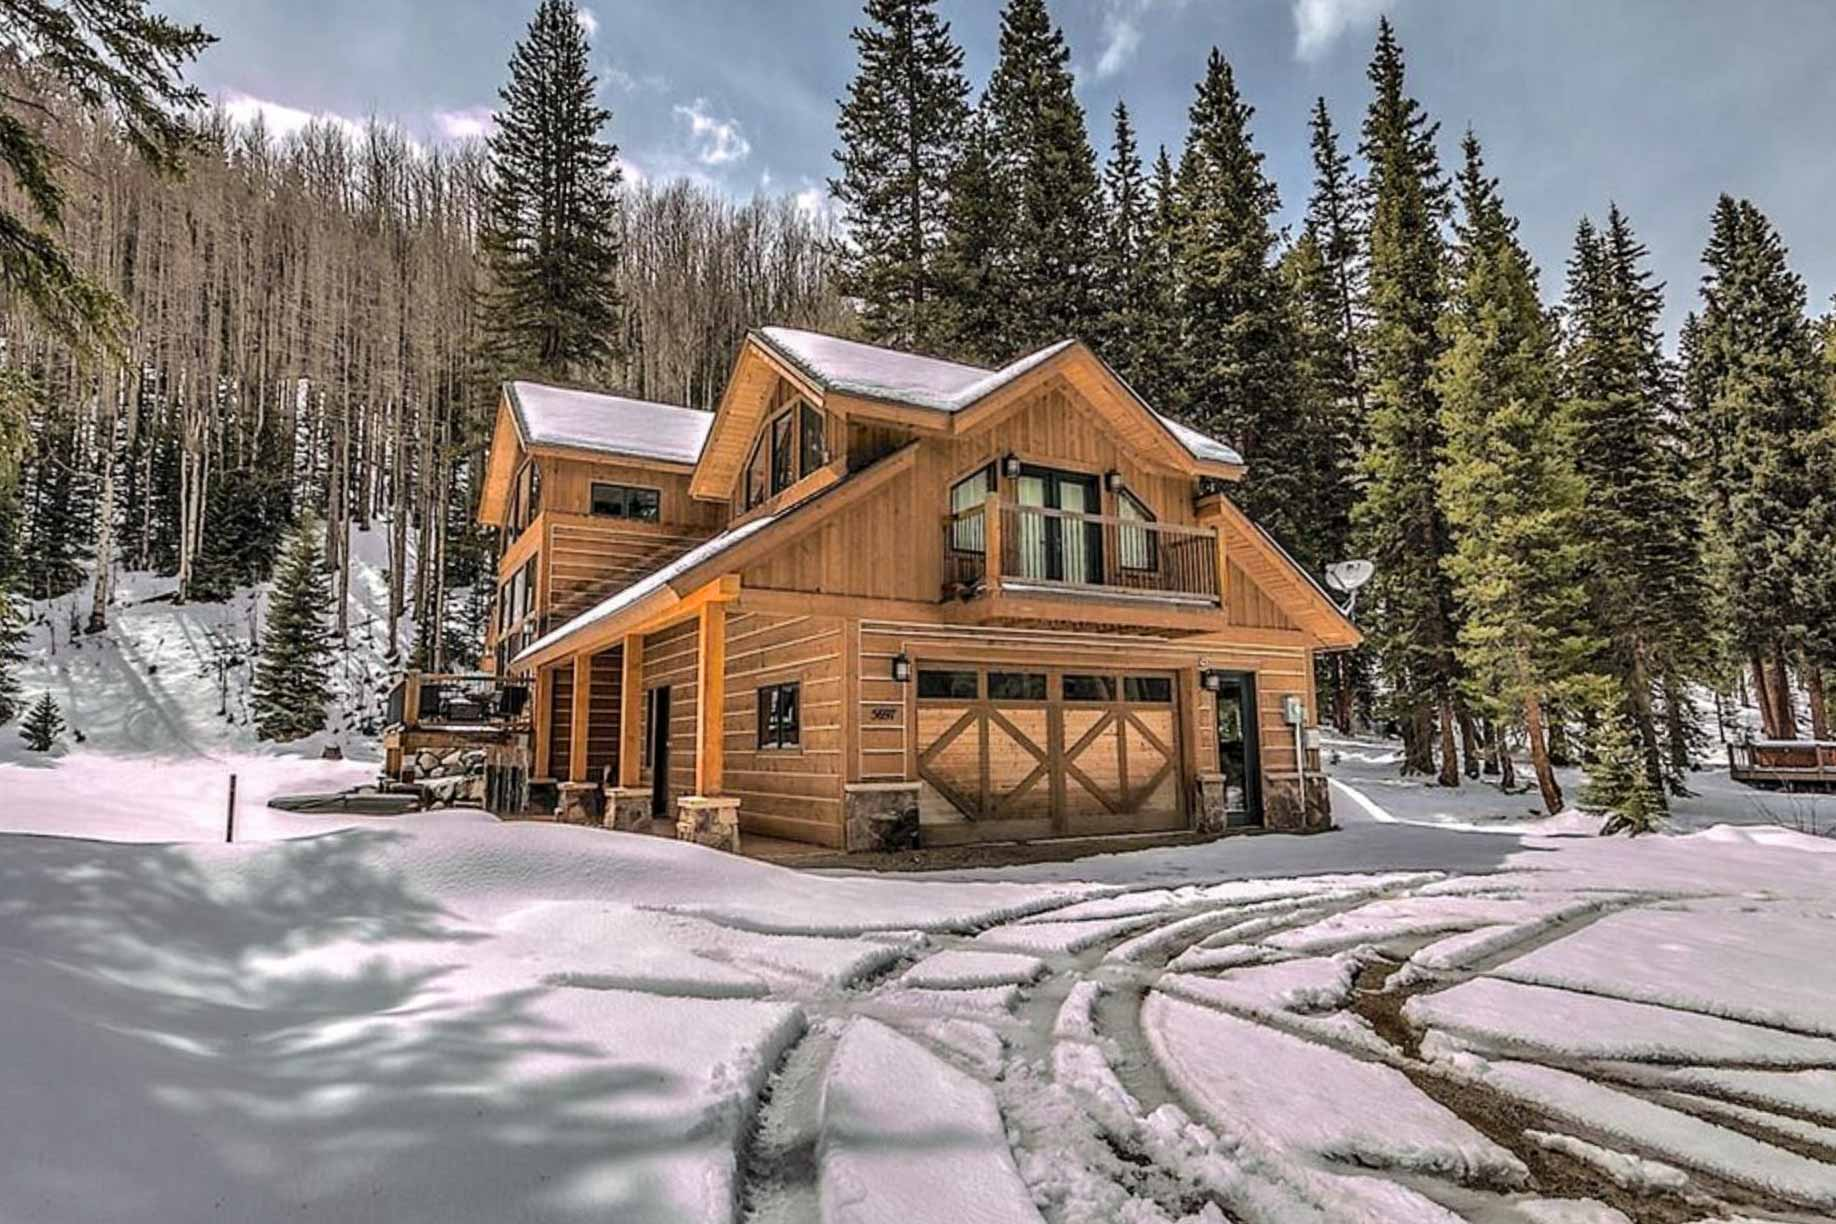 When the snow falls, this property transforms into a winter wonderland!